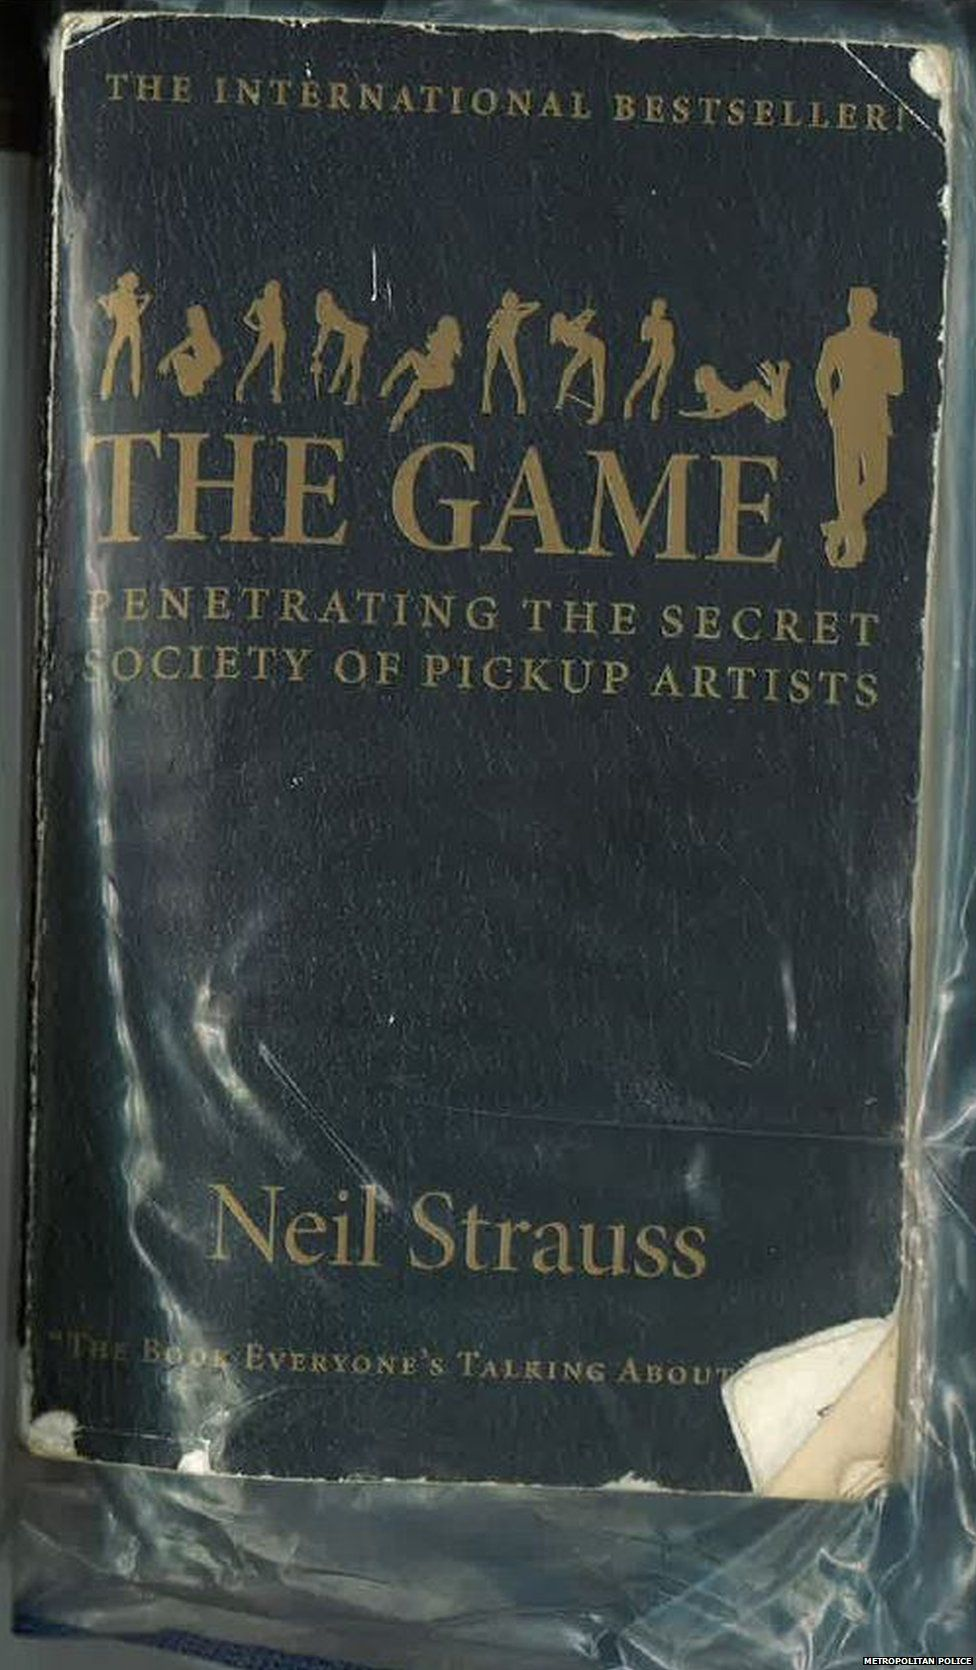 A copy of the book The Game found at Ojo's address